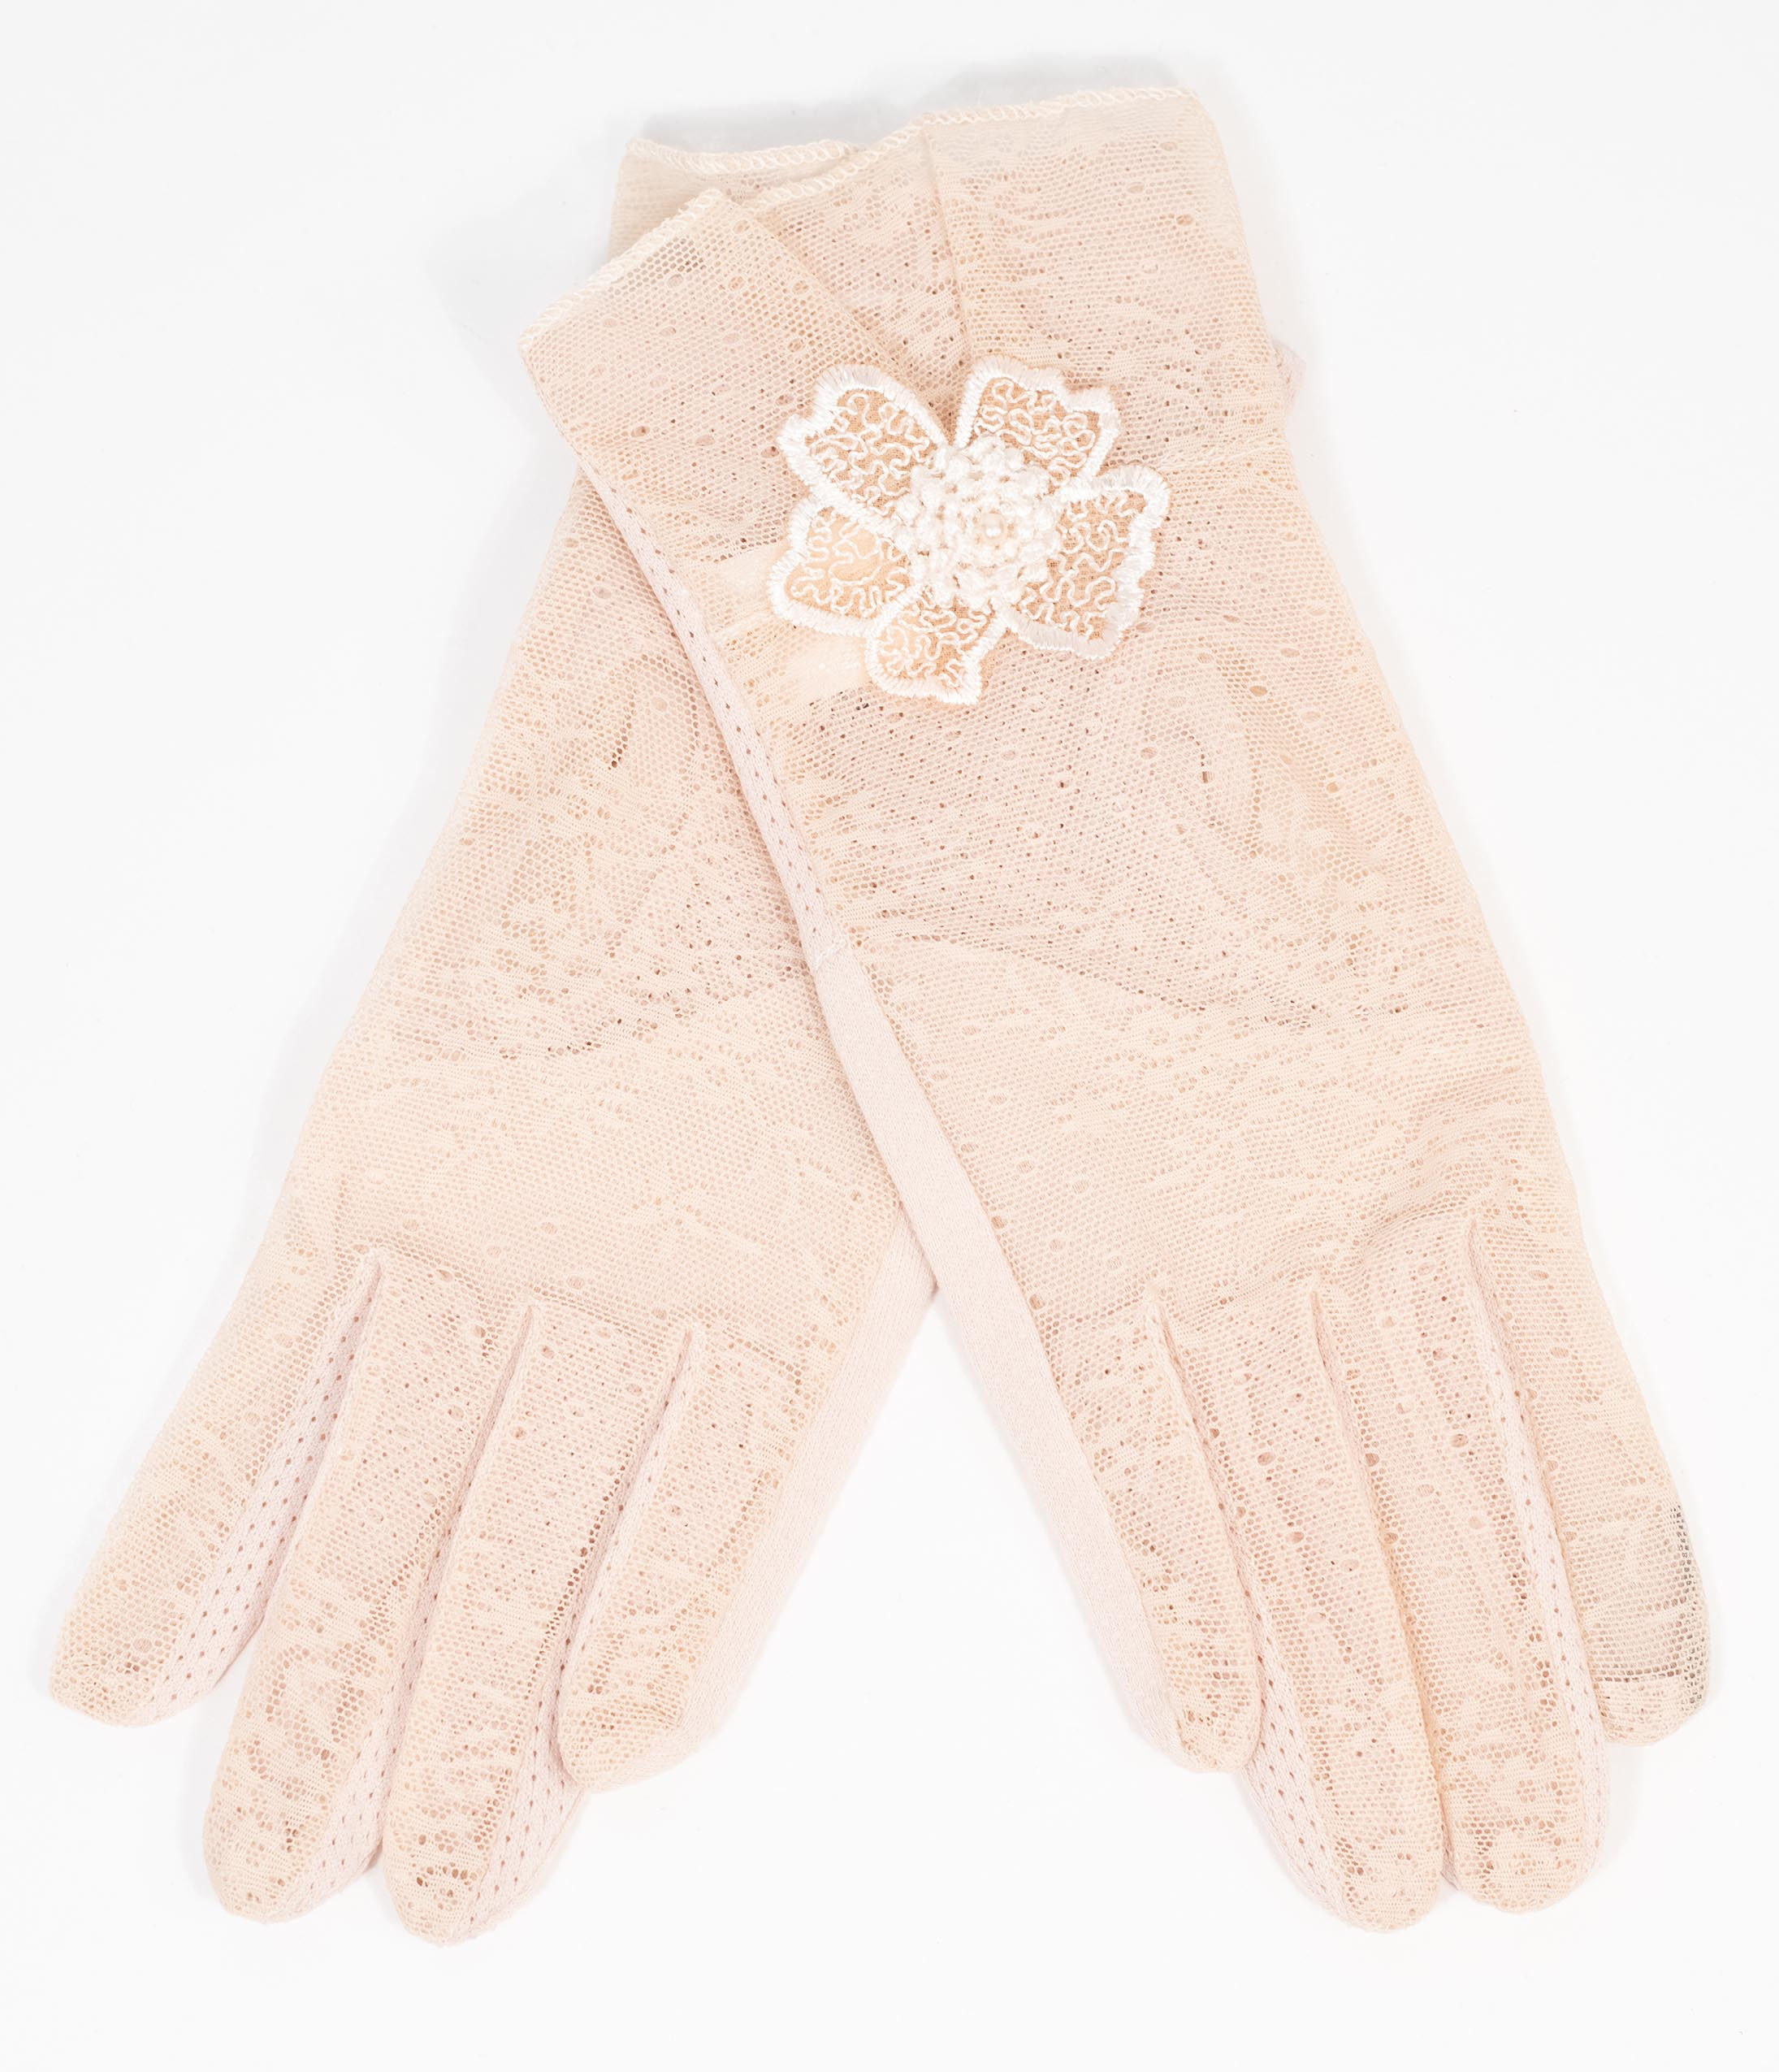 Edwardian Gloves, Handbags, Hair Combs, Wigs Beige Lace  Floral Accent Gloves $22.00 AT vintagedancer.com